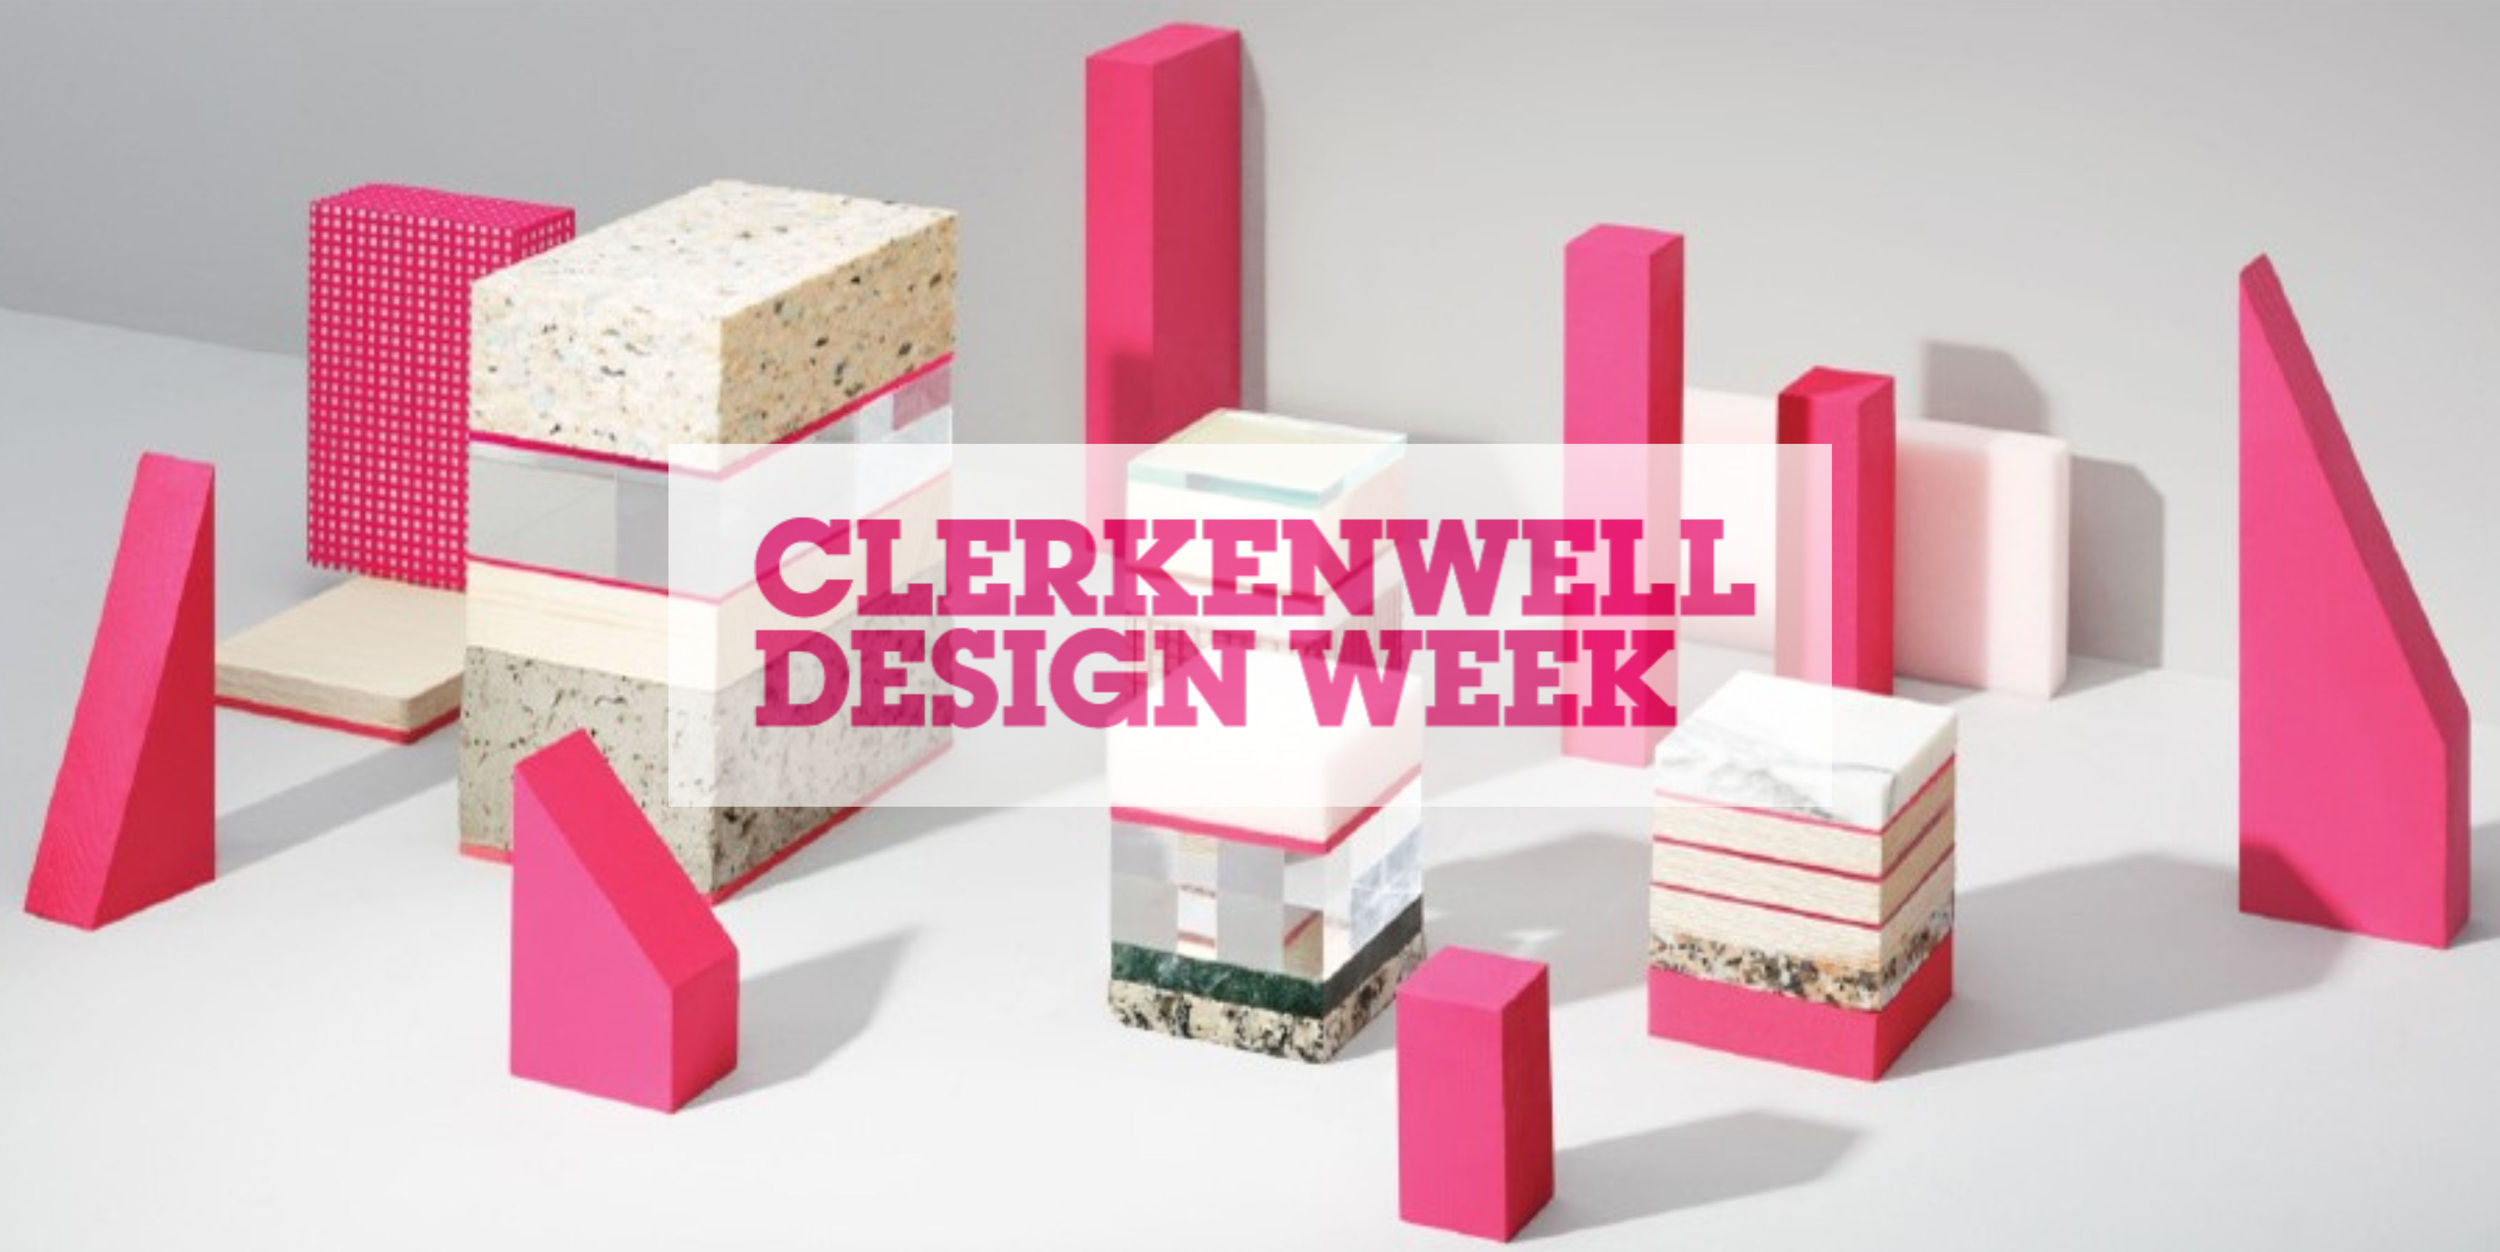 The three-day festival takes place throughout Clerkenwell, an area of London that has been synonymous with craft, creativity and innovation since the Middle Ages.